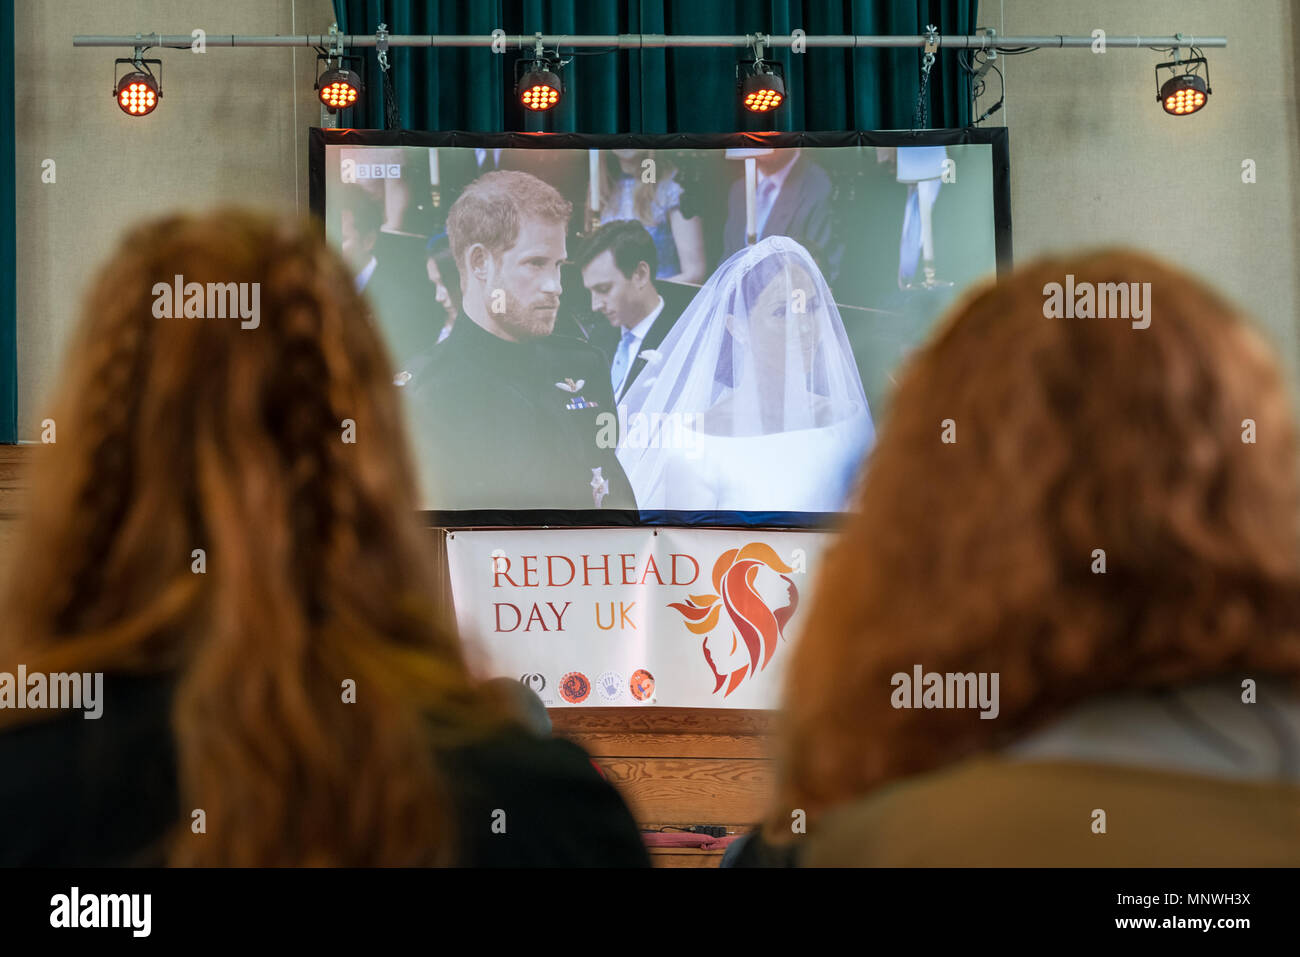 London, UK. 19th May 2018. Prince Harry is watched by redheads during the live broadcast of the royal wedding at Redhead Day UK in north London. The annual event sees hundreds of 'gingers' from around the world join in celebration of red hair. Credit: Guy Corbishley/Alamy Live News - Stock Image